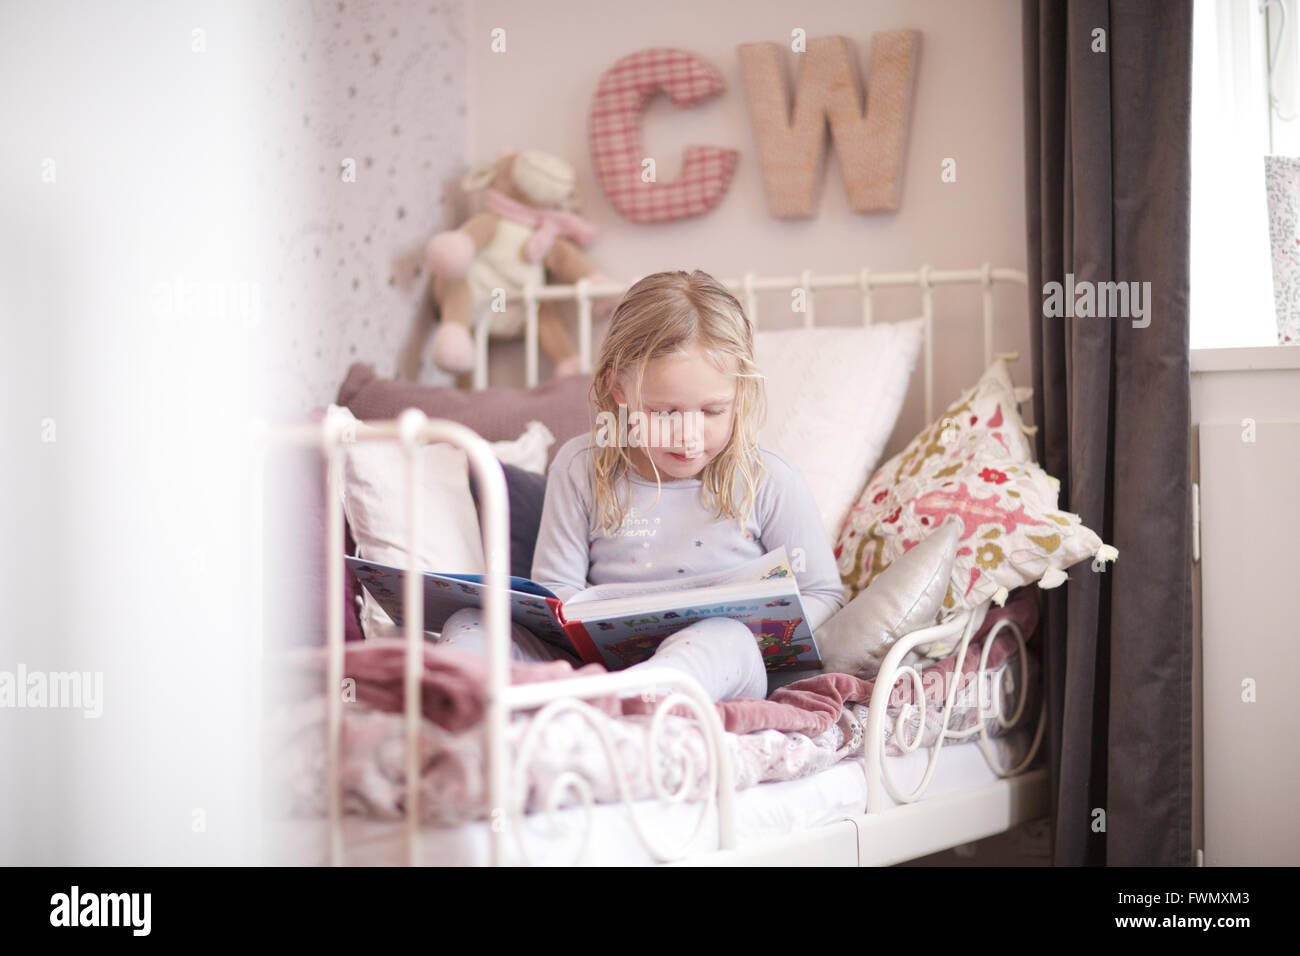 little girl reading storybook. focus, kid, learning, read. - Stock Image